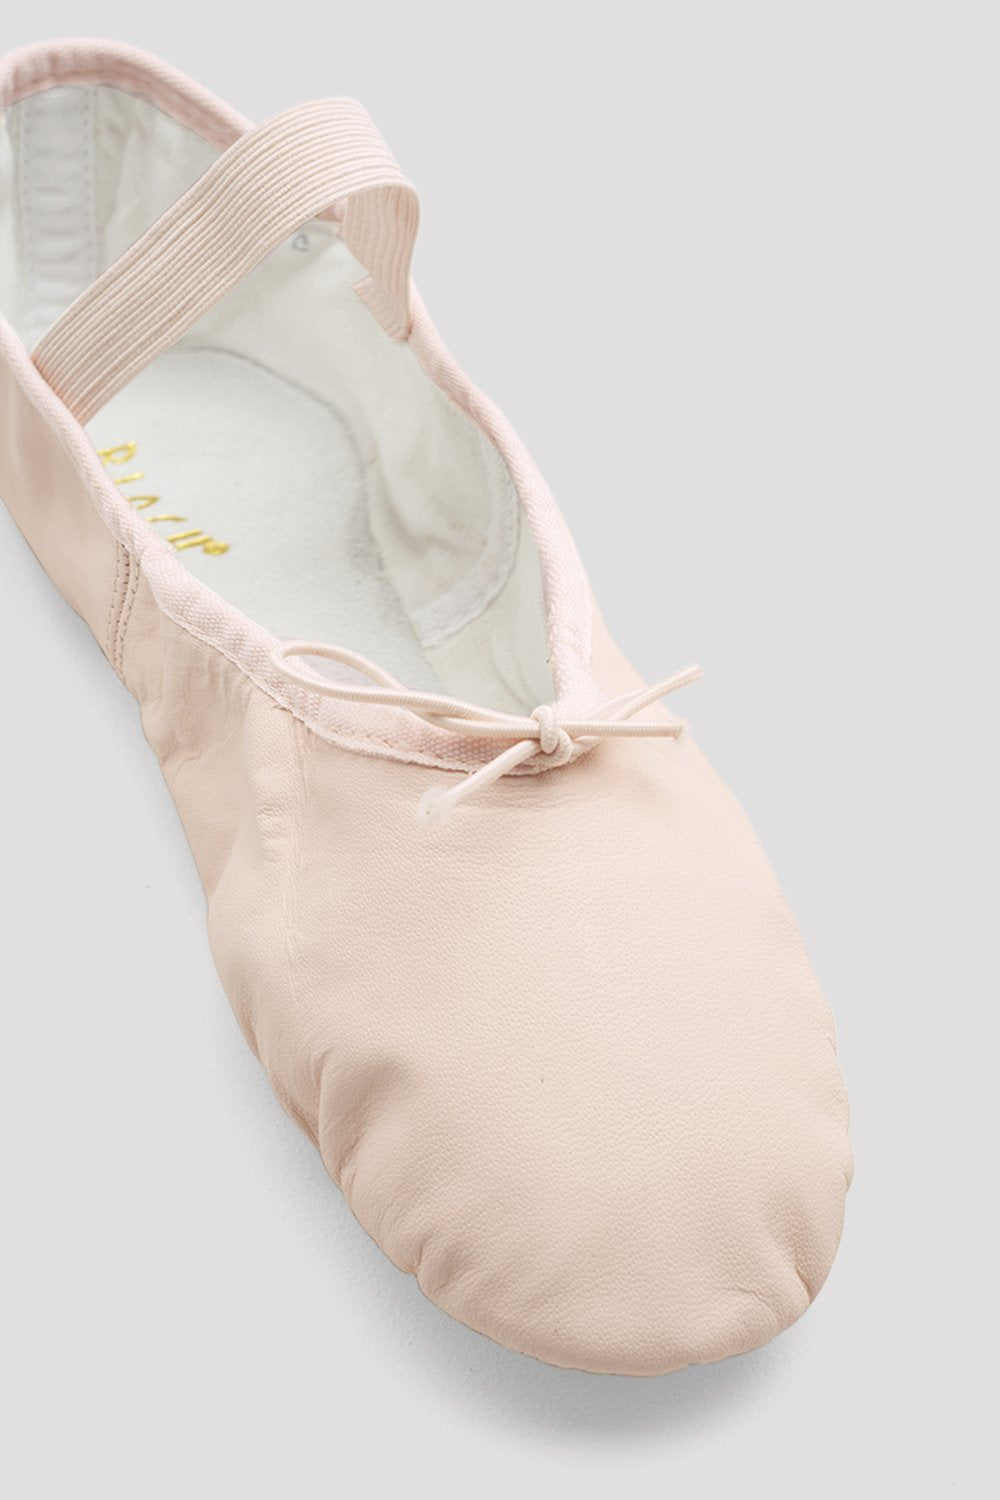 Ladies Dansoft Leather Ballet Shoes - BLOCH US